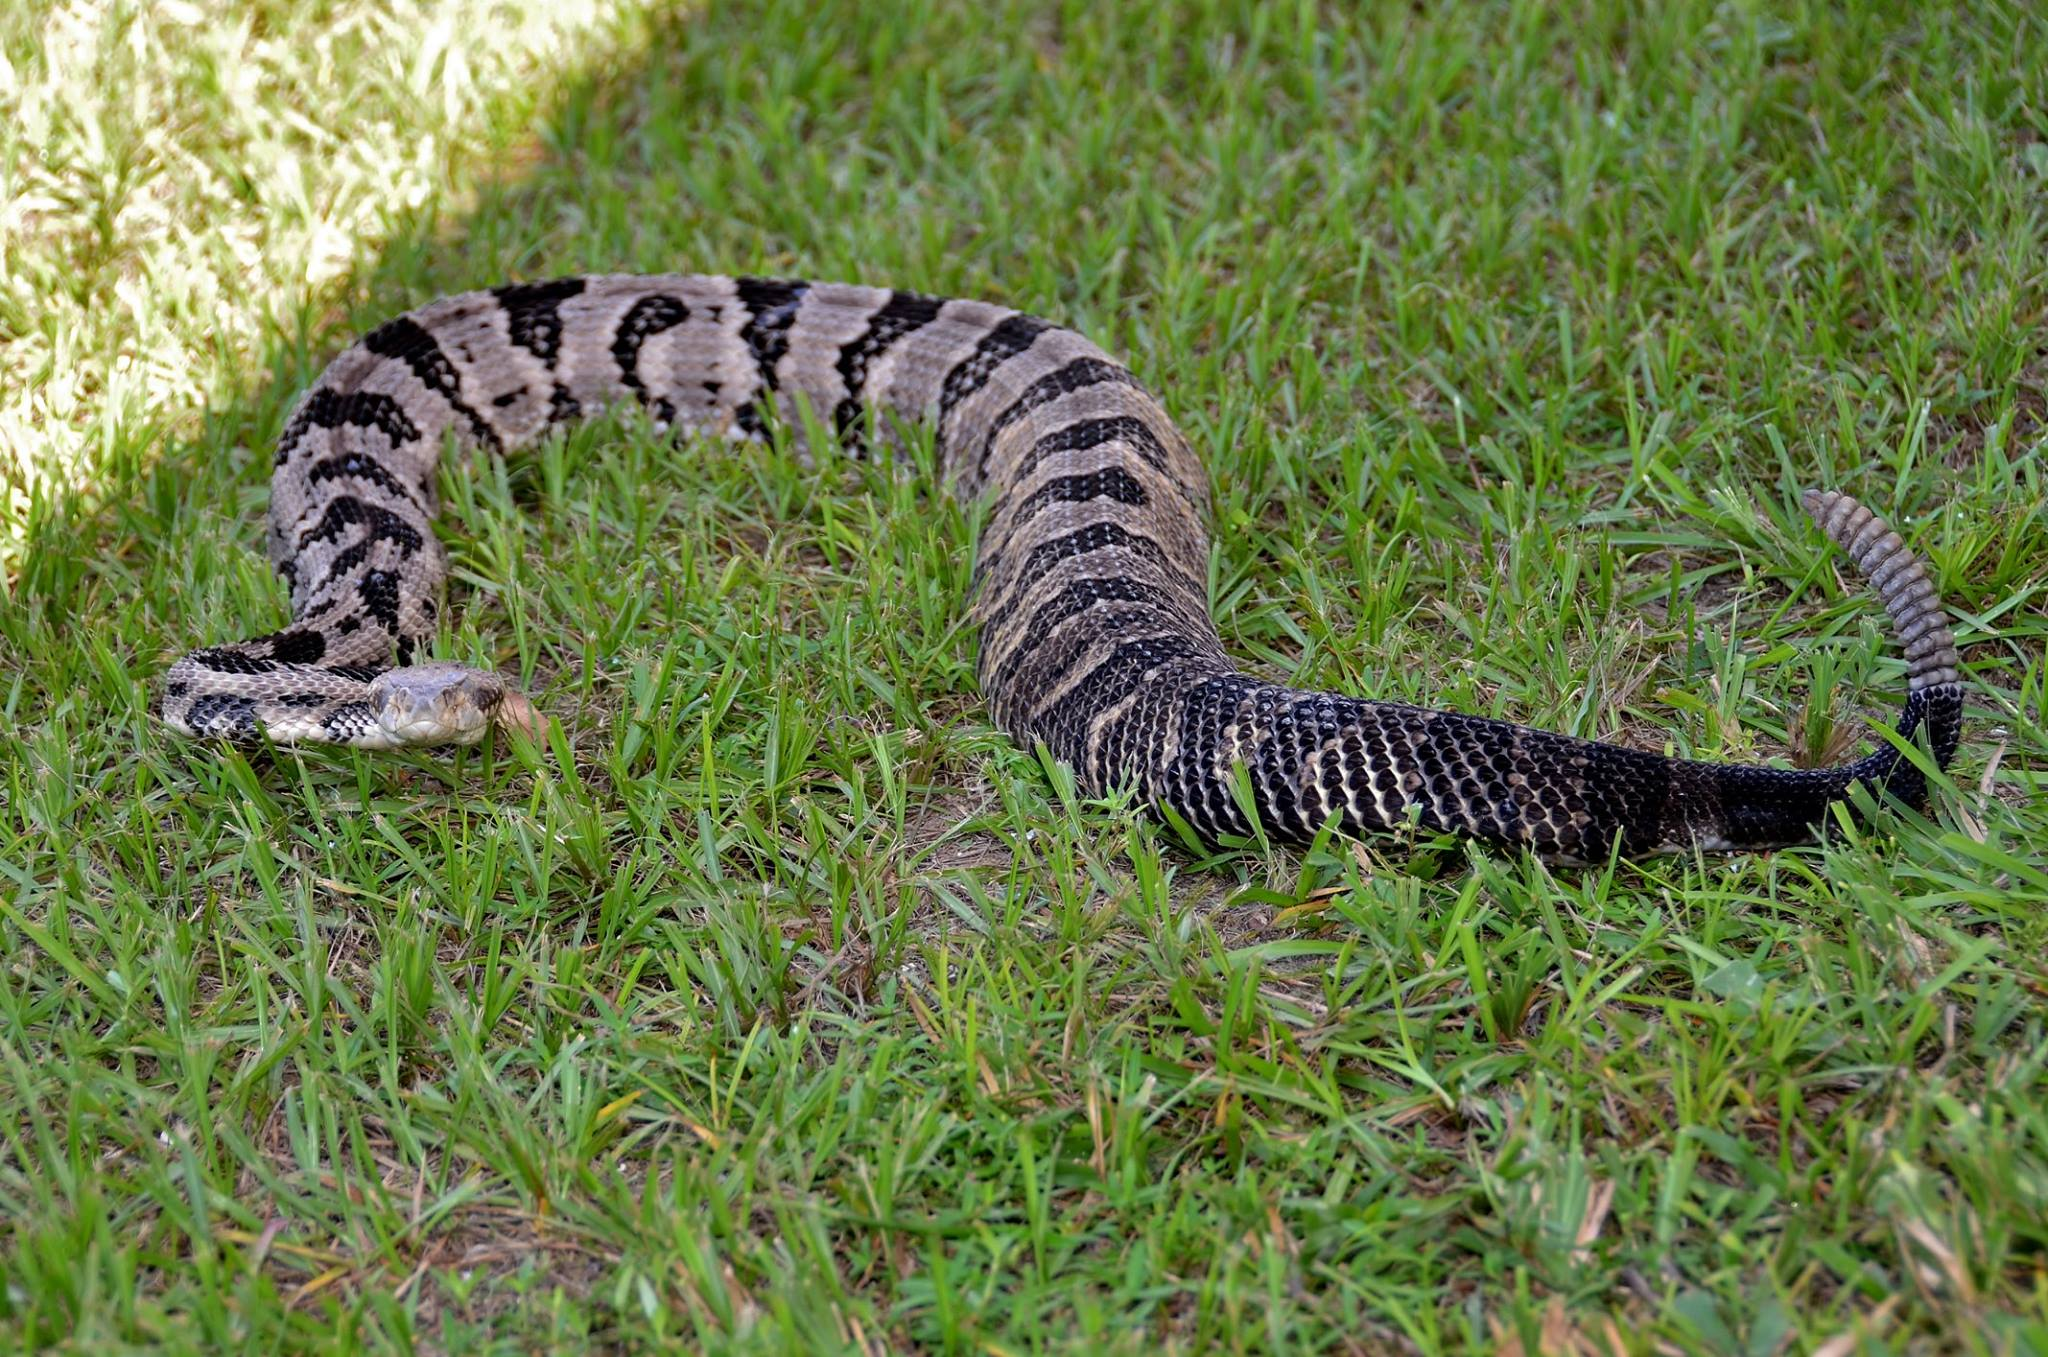 Venomous snakes to watch out for in Florida